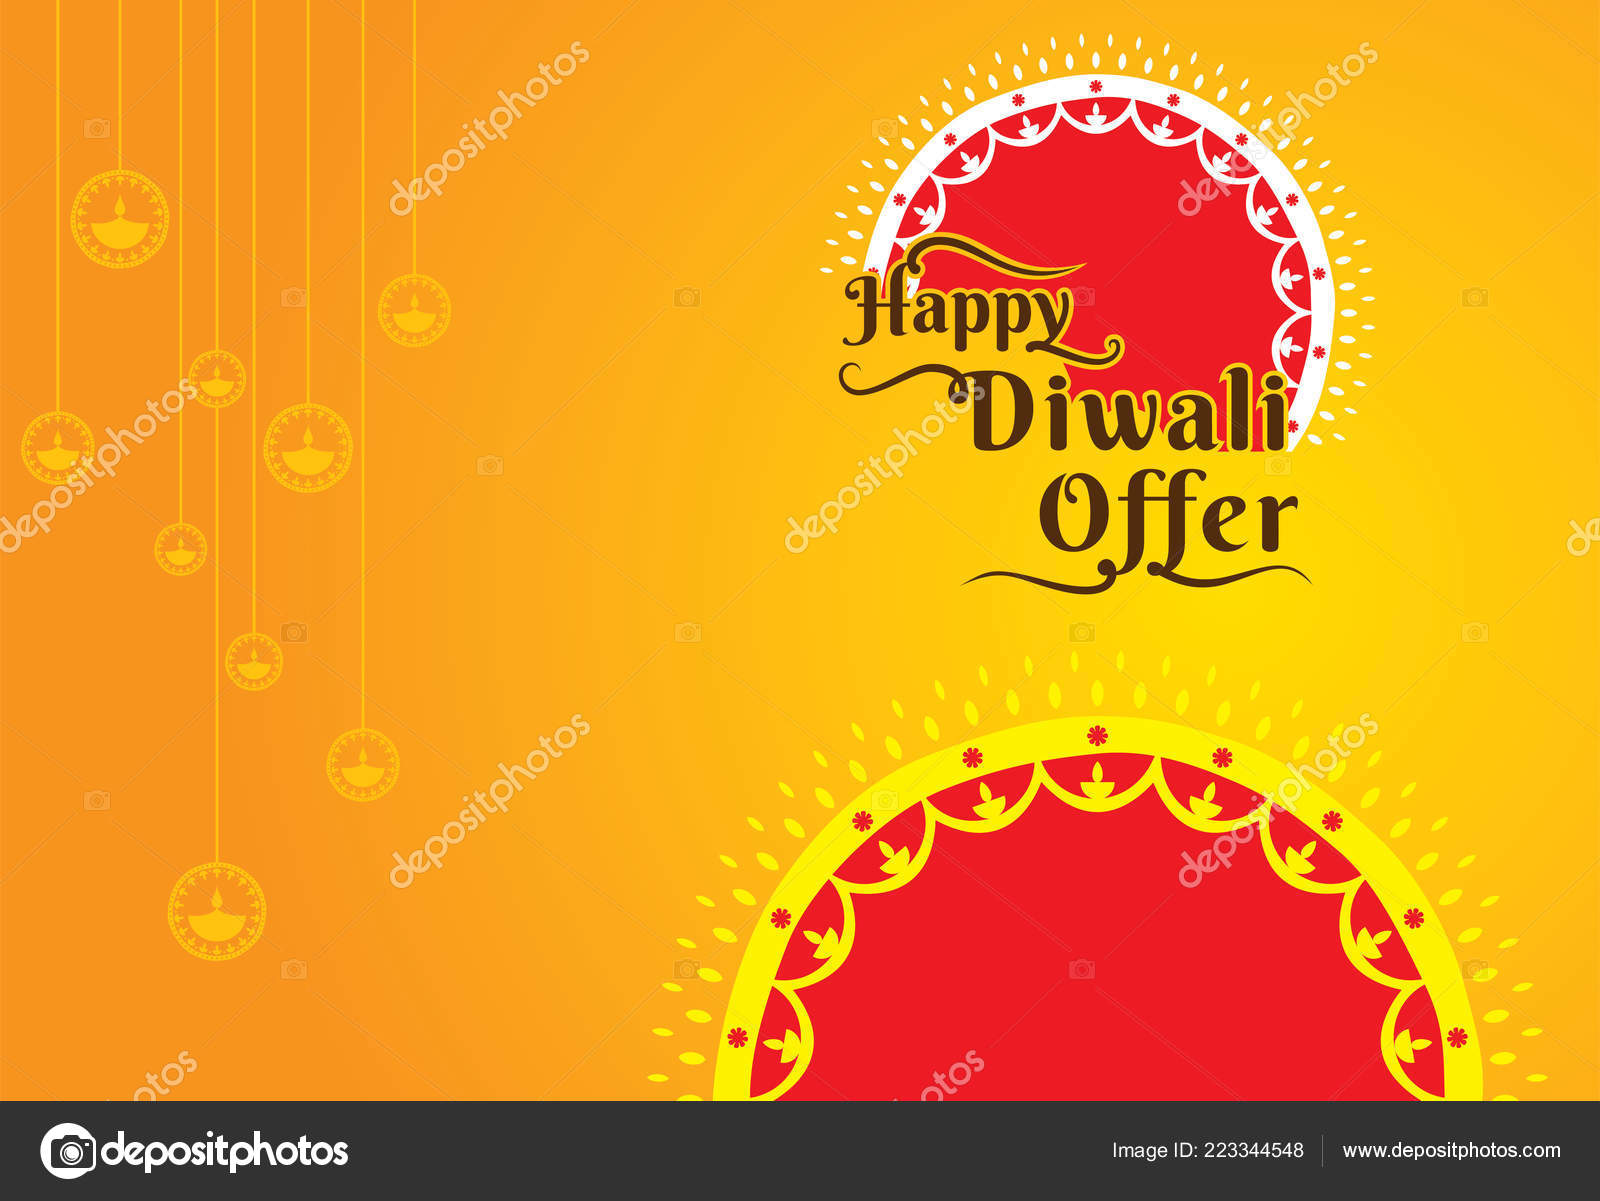 creative diwali festival offer poster design layout template stock illustration